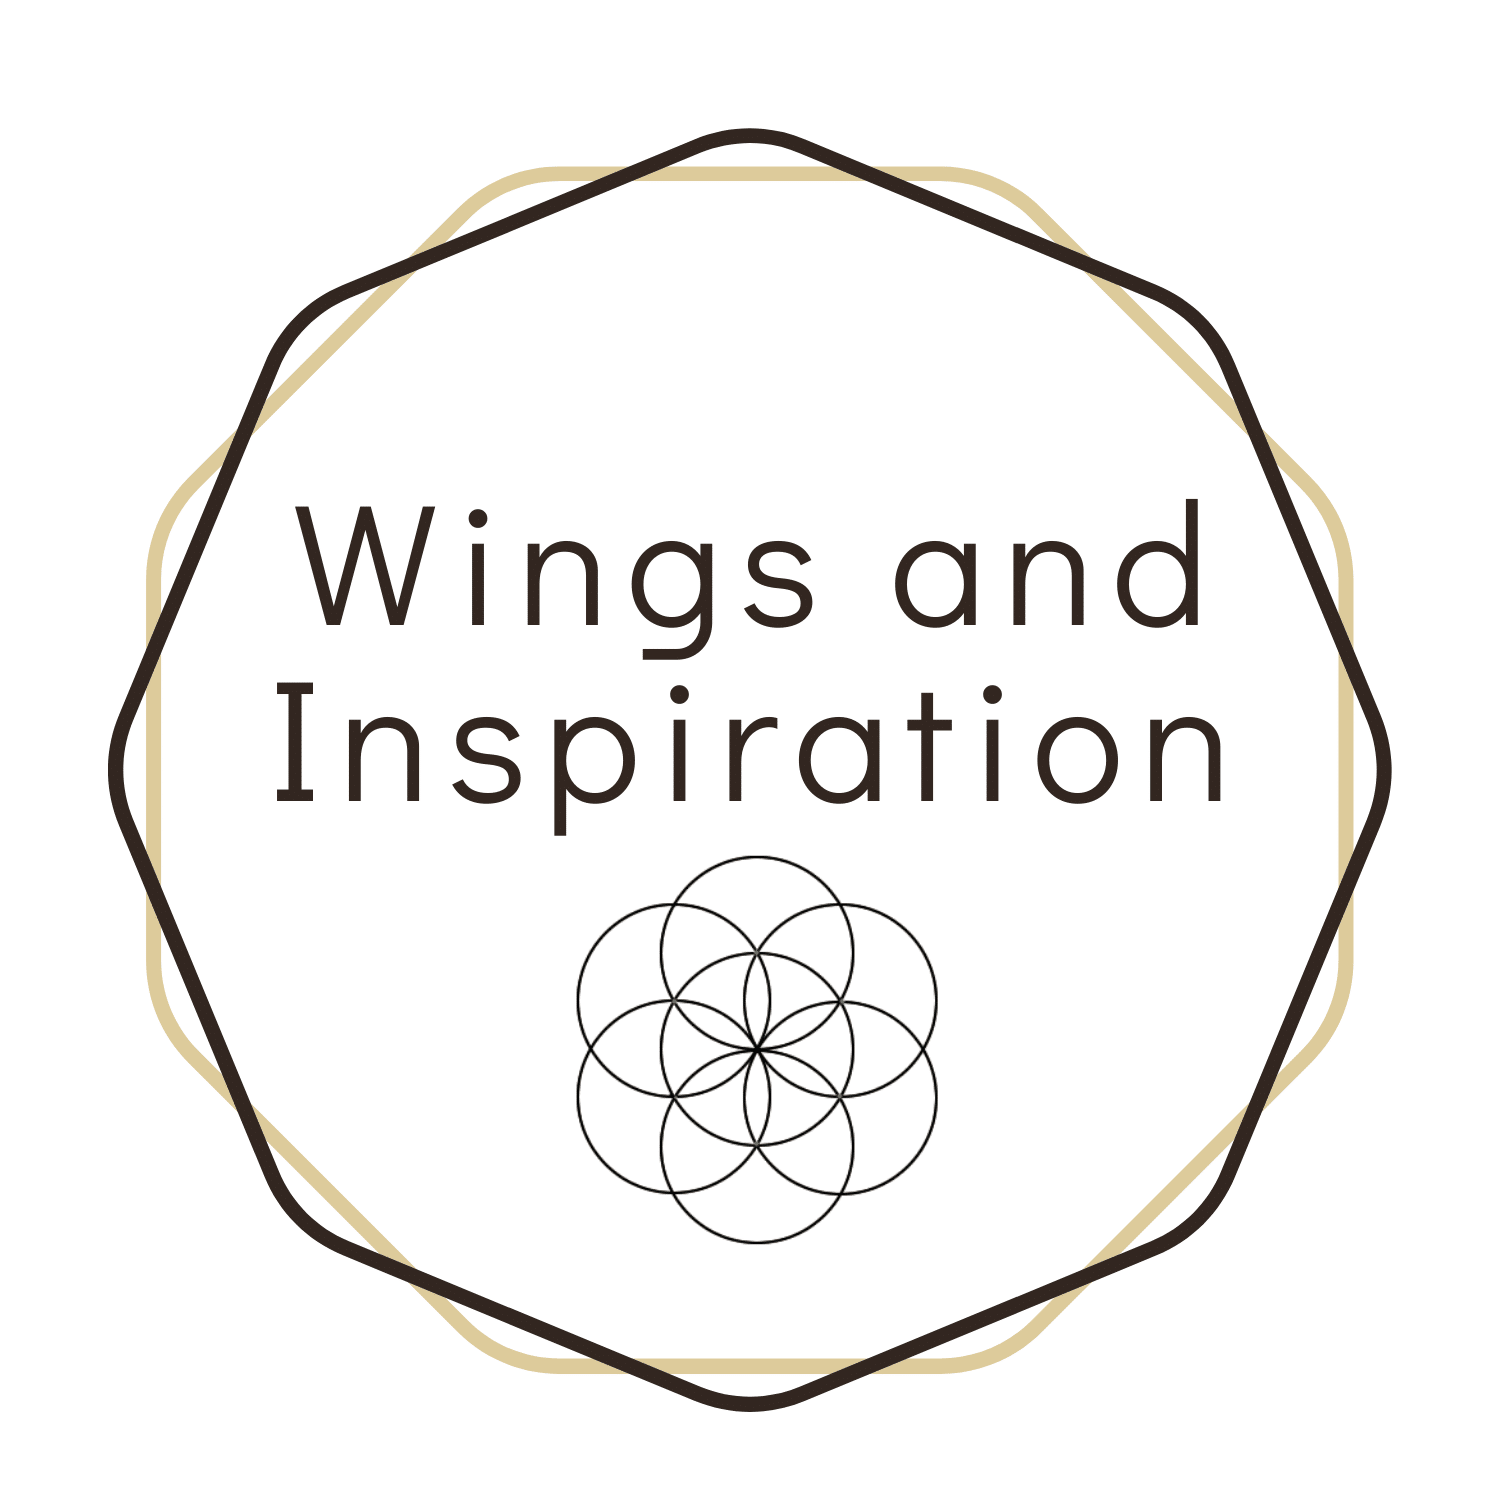 Wings and Inspiration